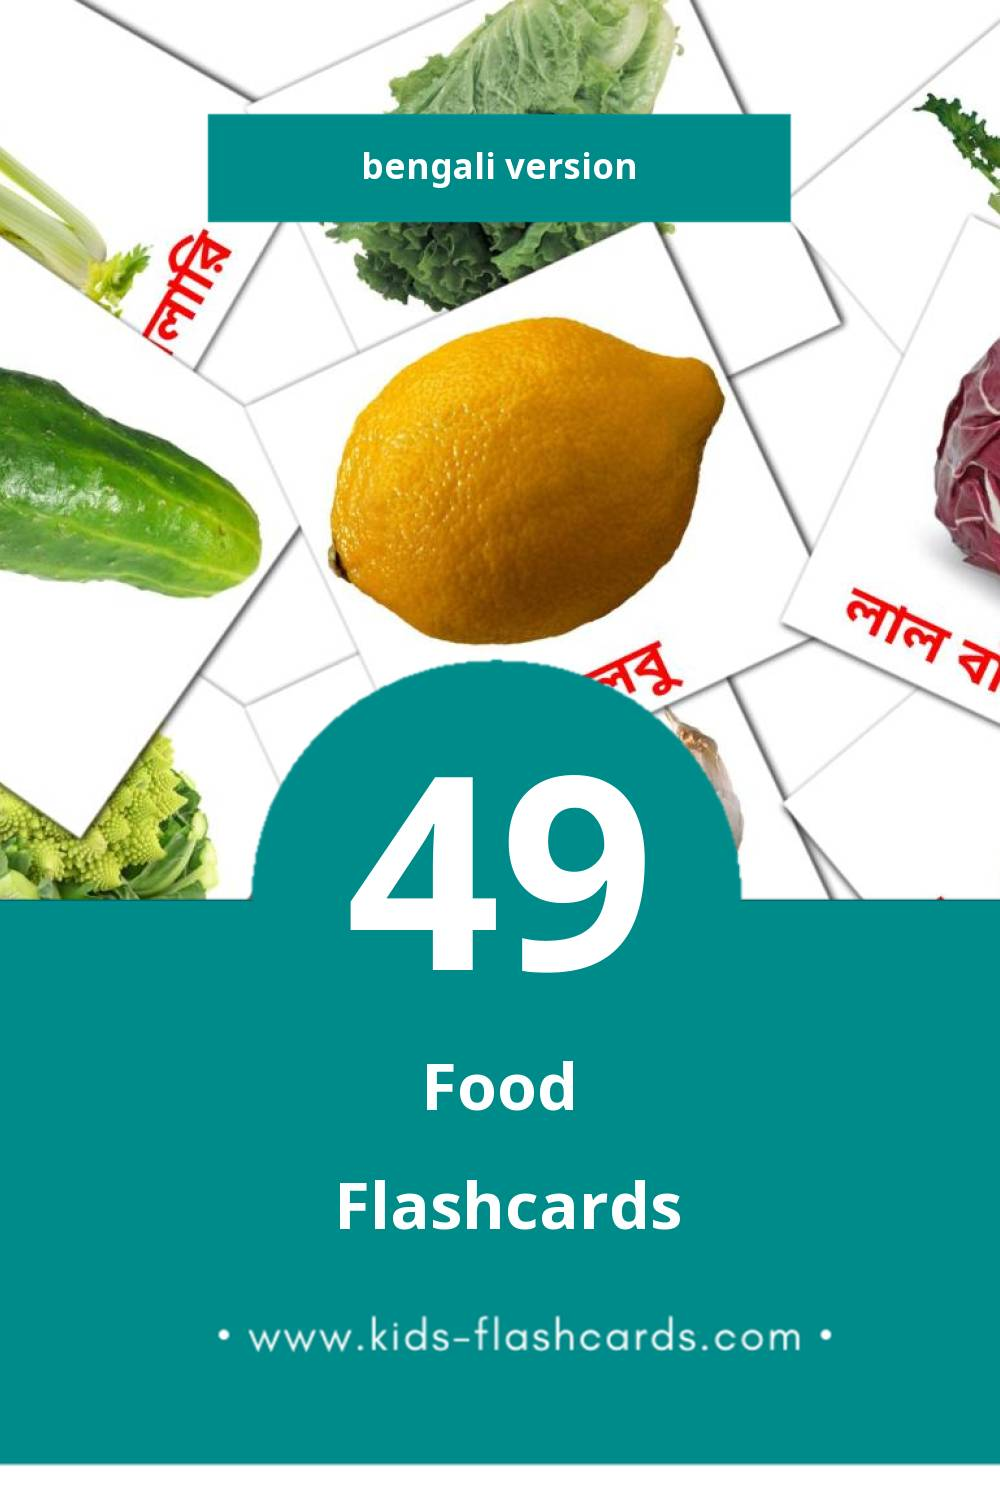 Visual খাদ্য Flashcards for Toddlers (20 cards in Bengali)